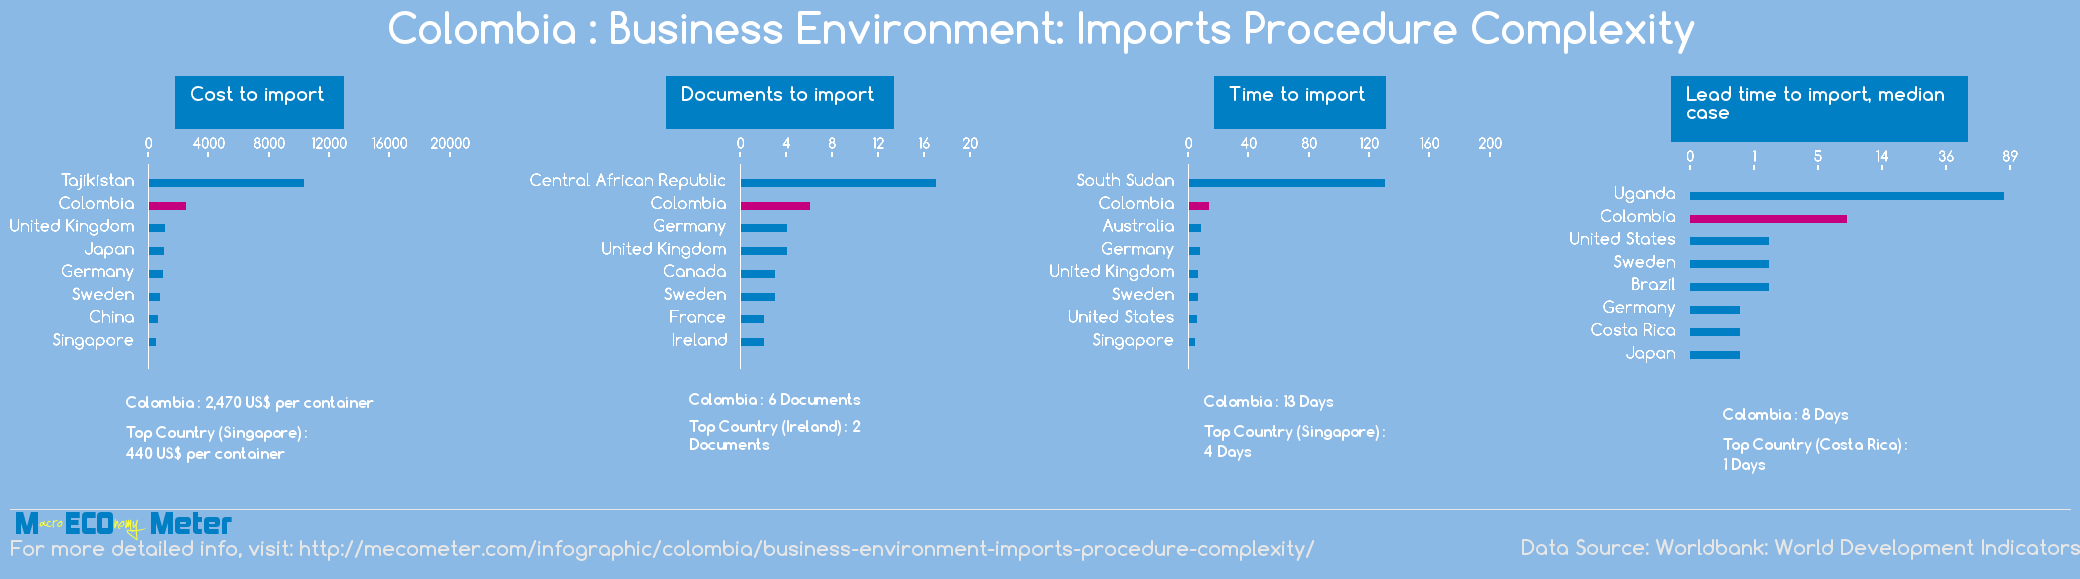 Colombia : Business Environment: Imports Procedure Complexity